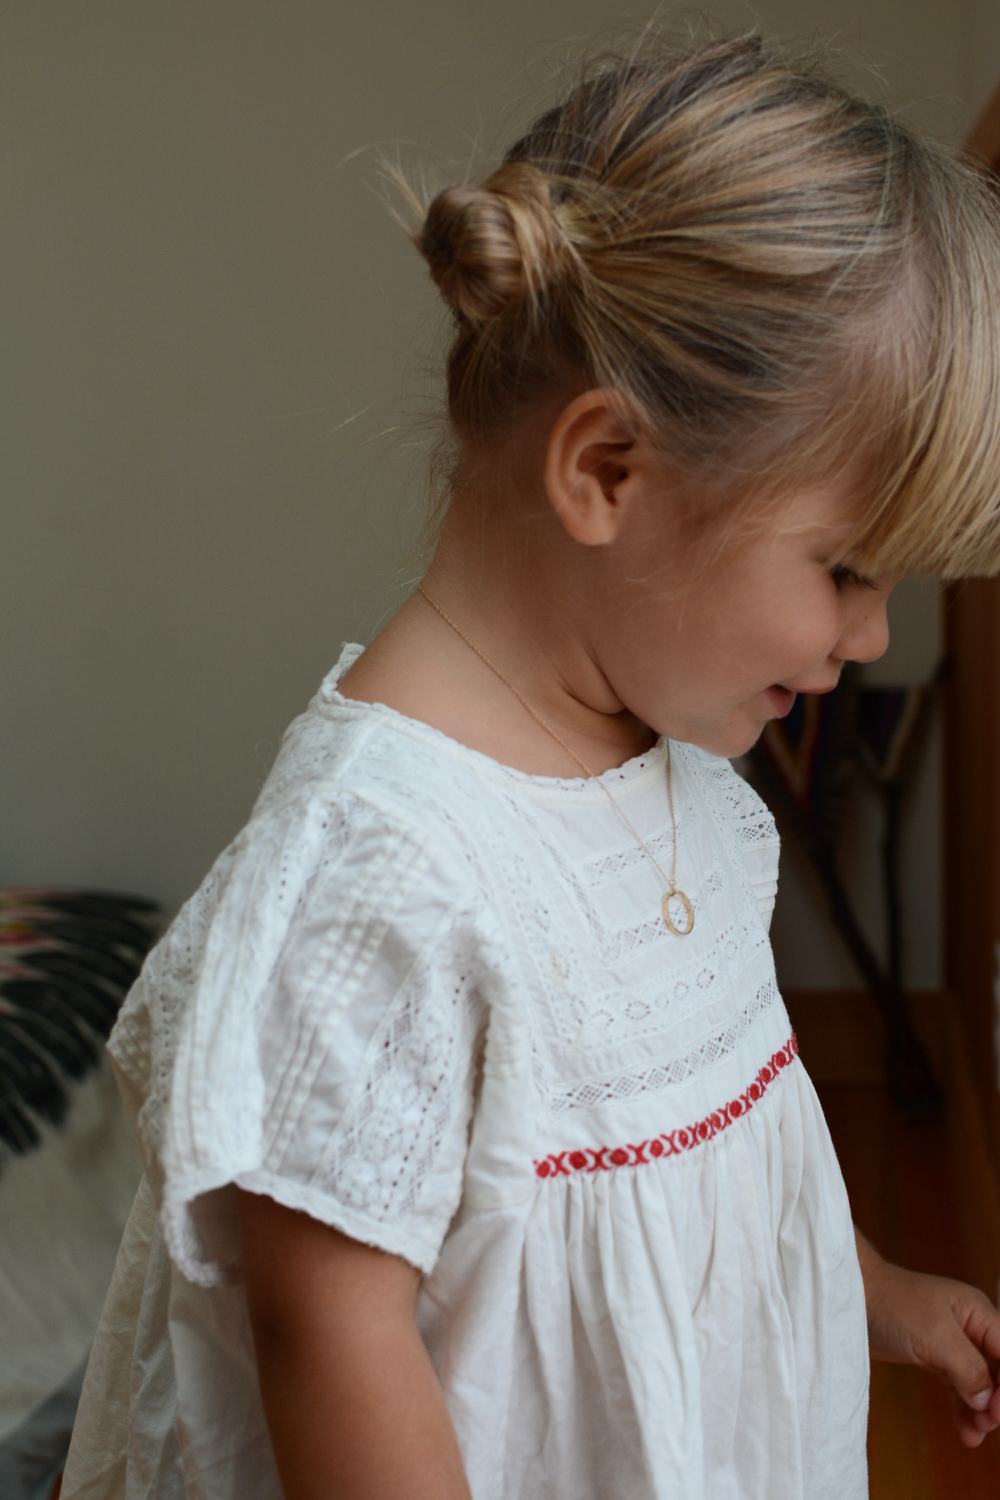 Marlow wearing Blanca Gomez necklace